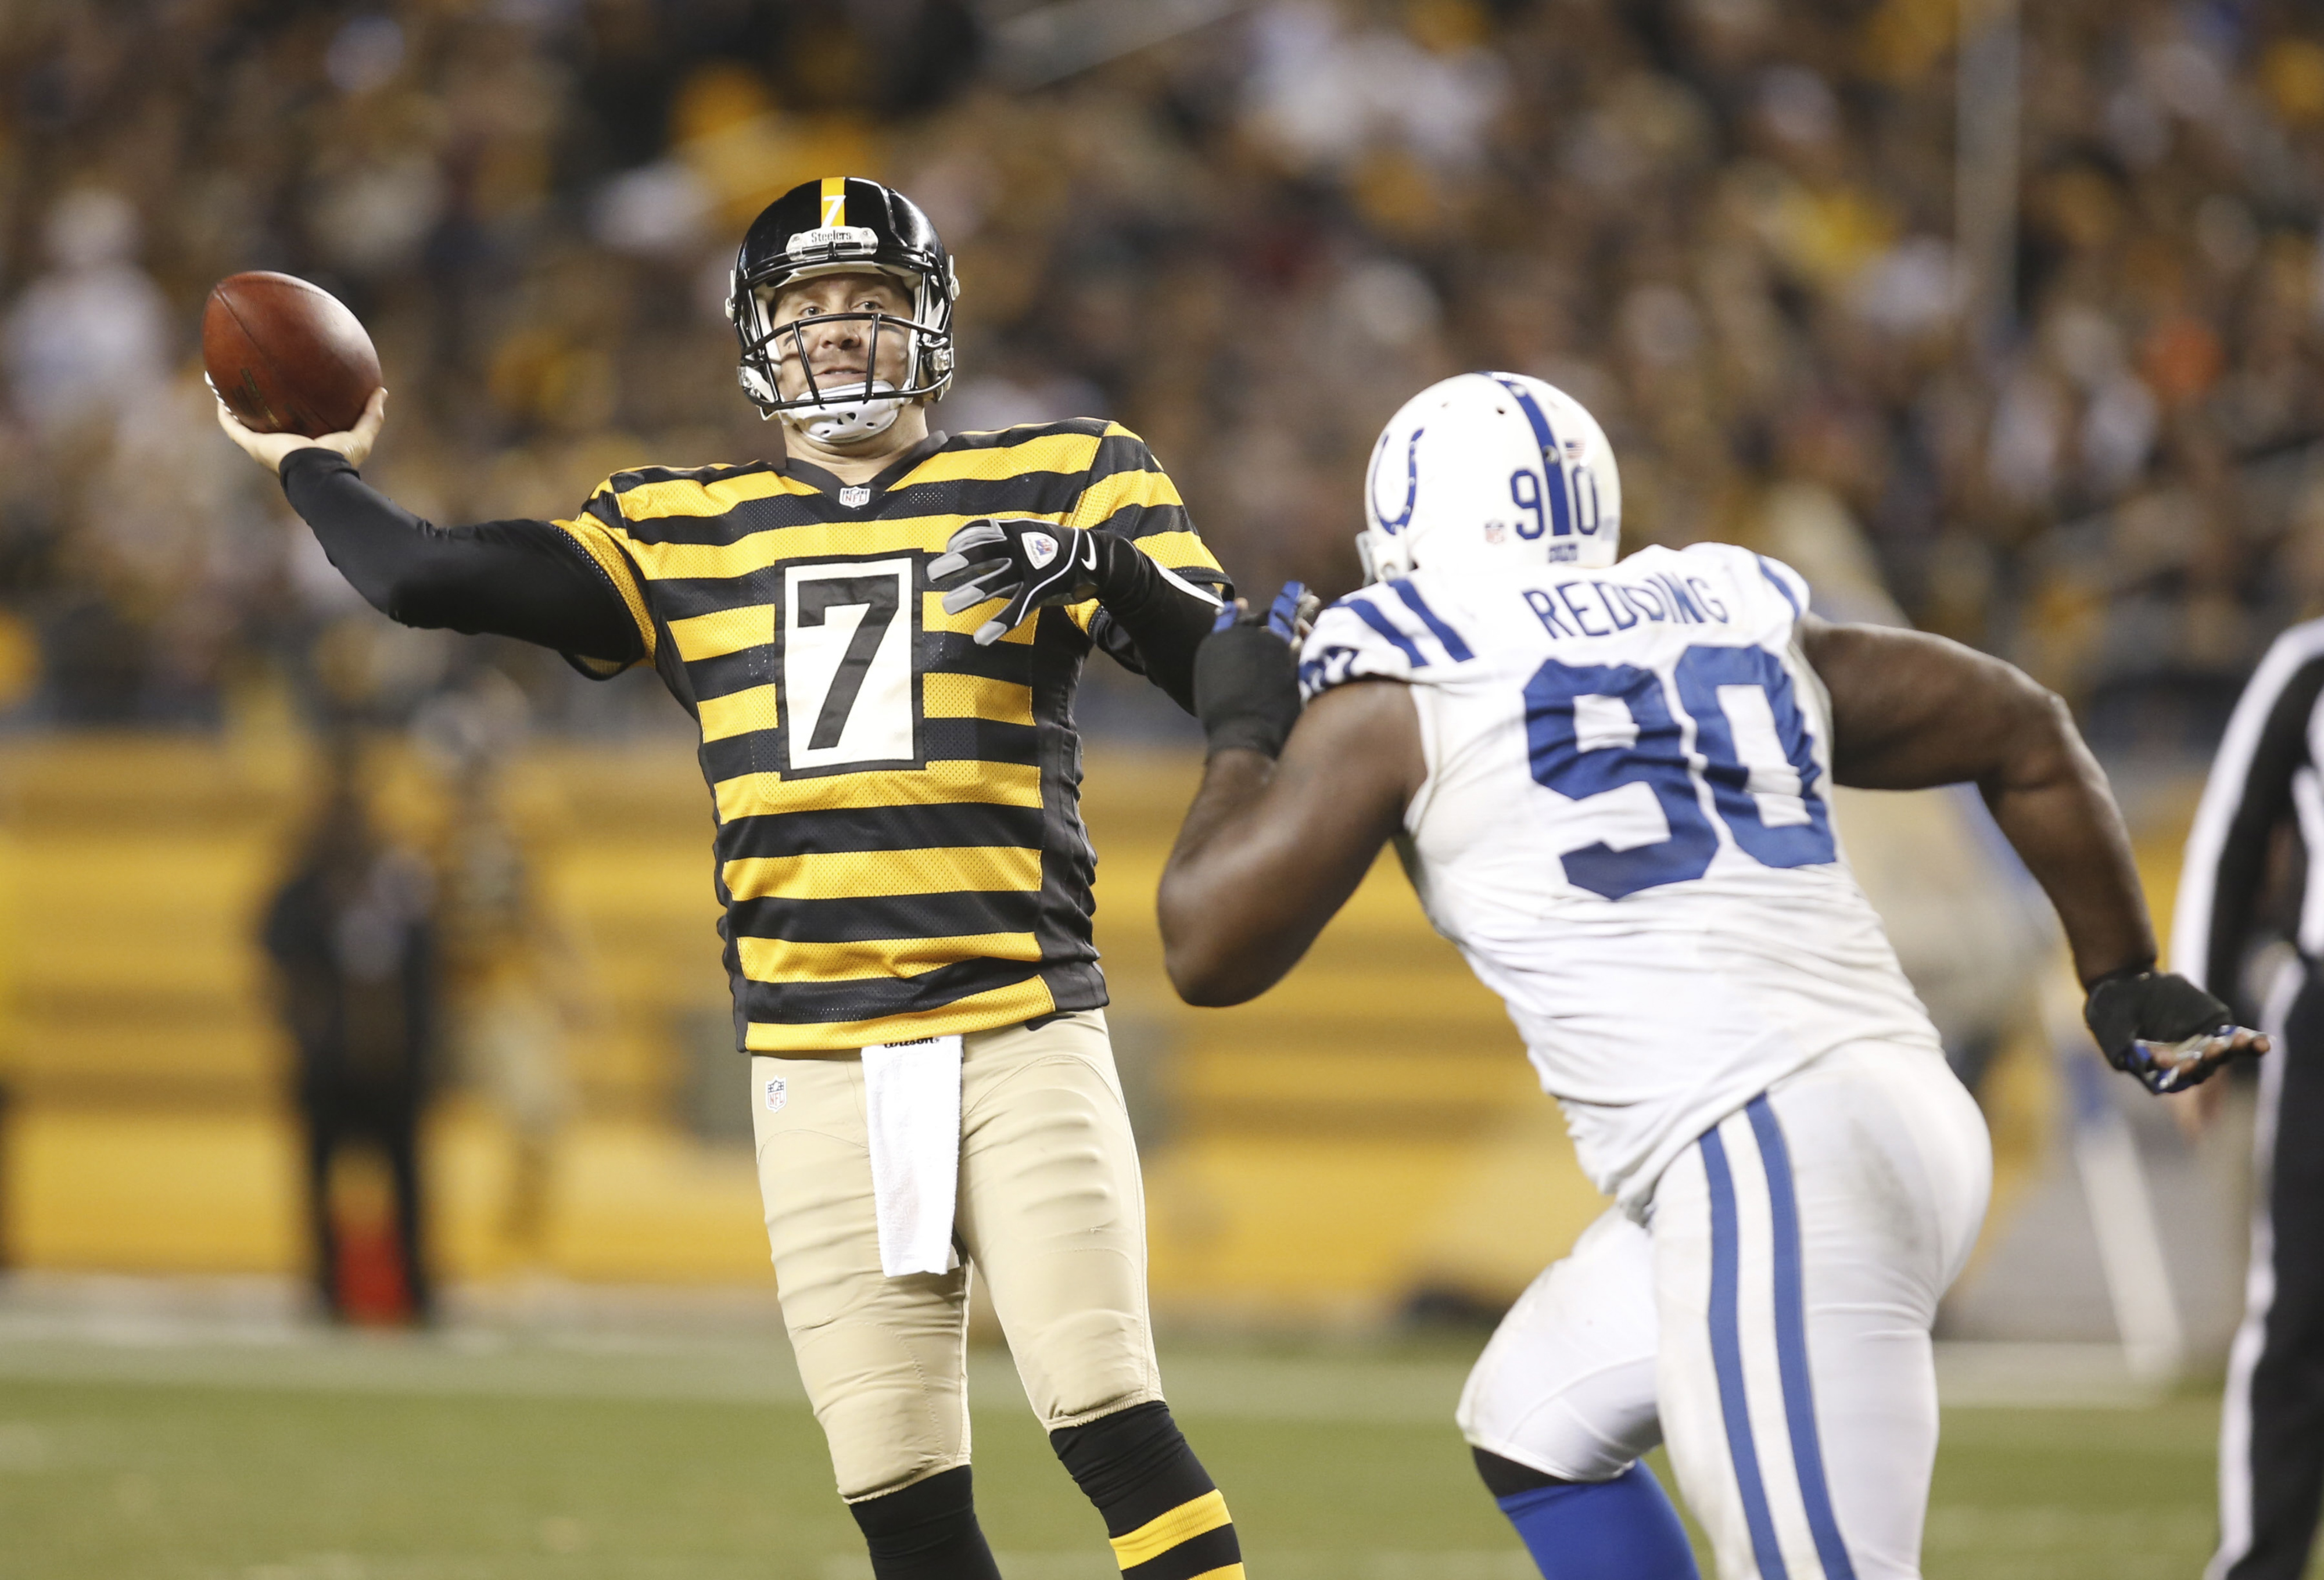 Ben Roethlisberger was at his best vs. the Colts